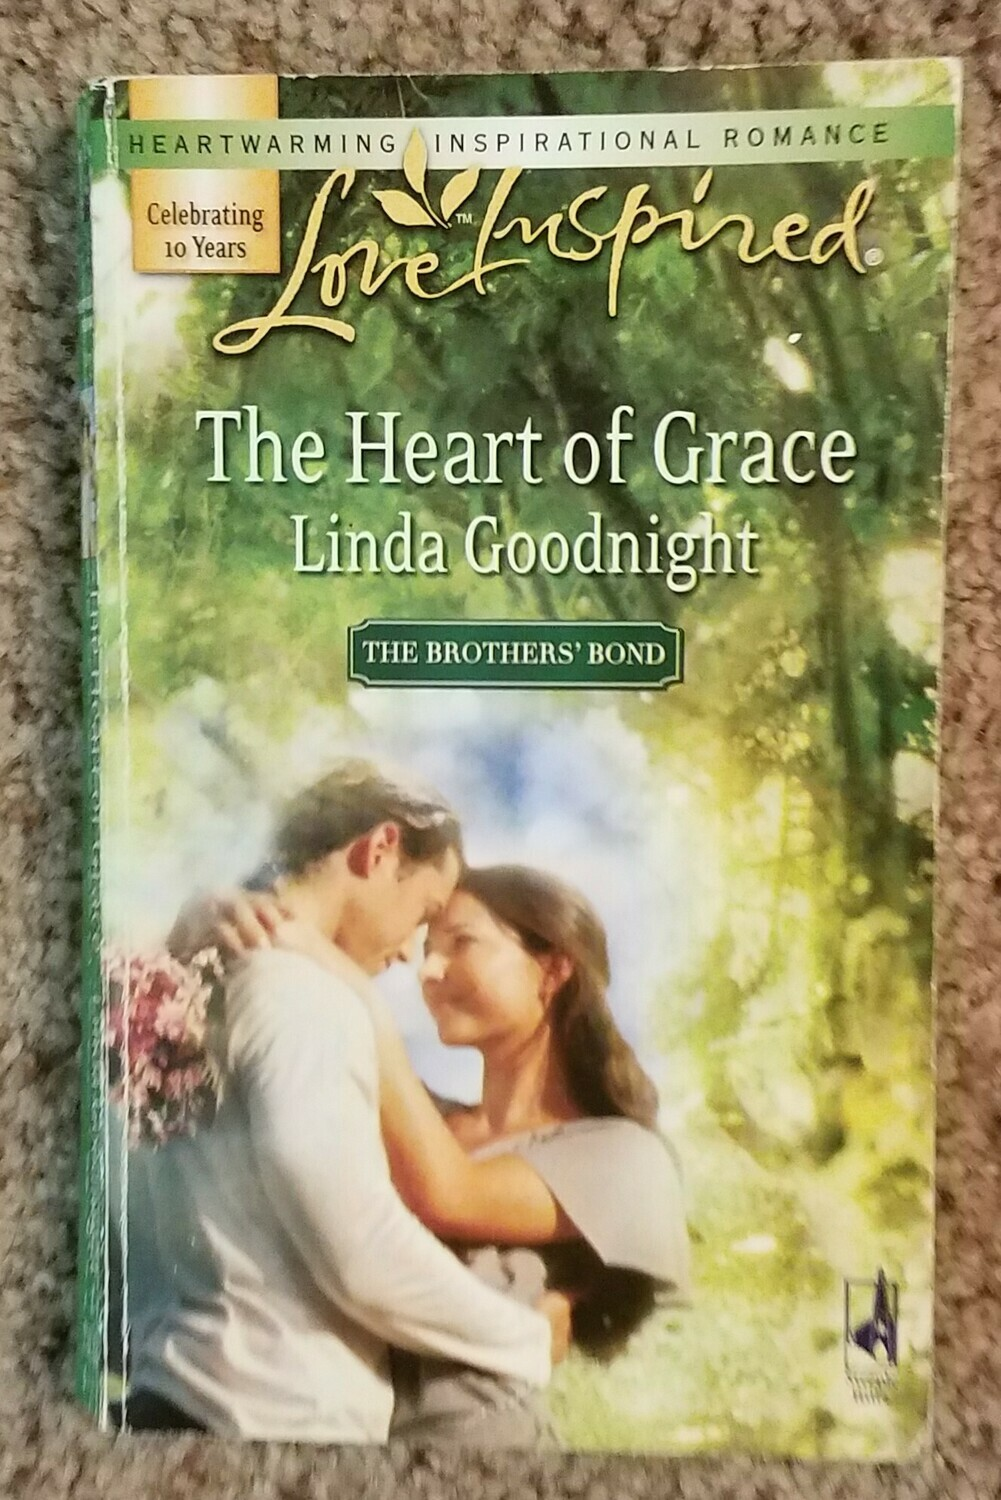 The Heart of Grace by Linda Goodnight